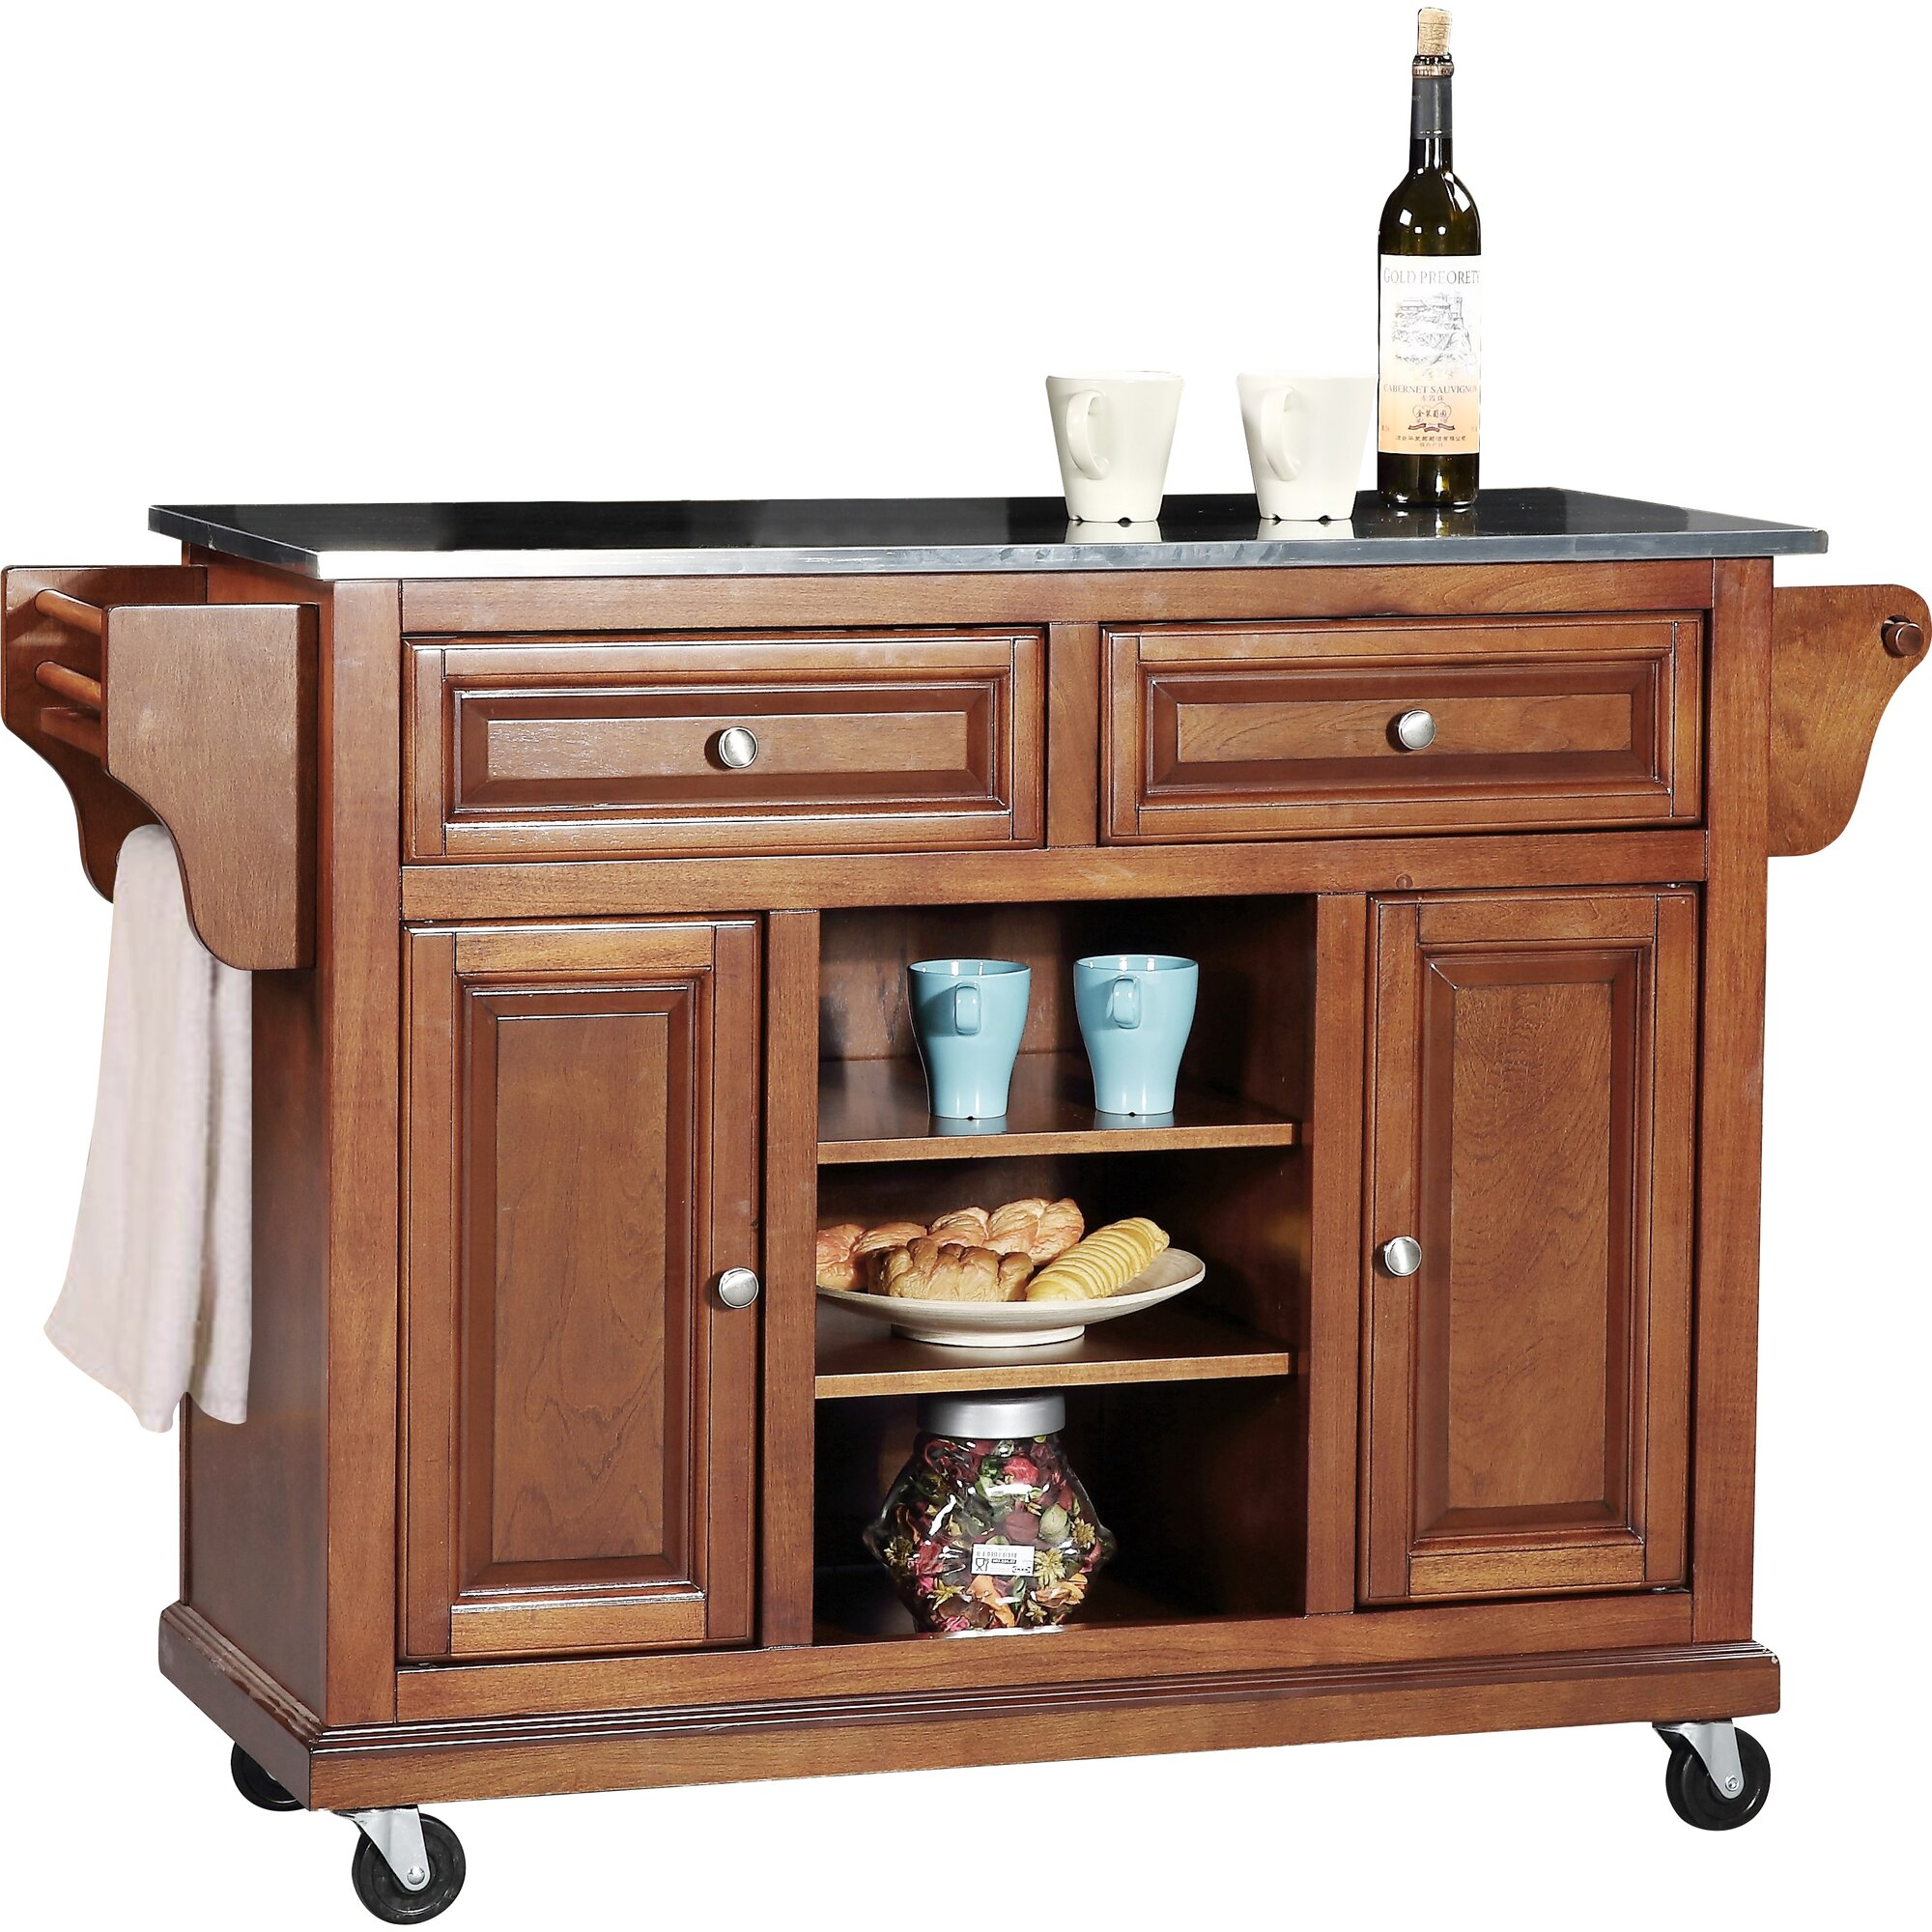 wildon home 174 kitchen island with stainless steel top crosley kitchen island with stainless steel top amp reviews